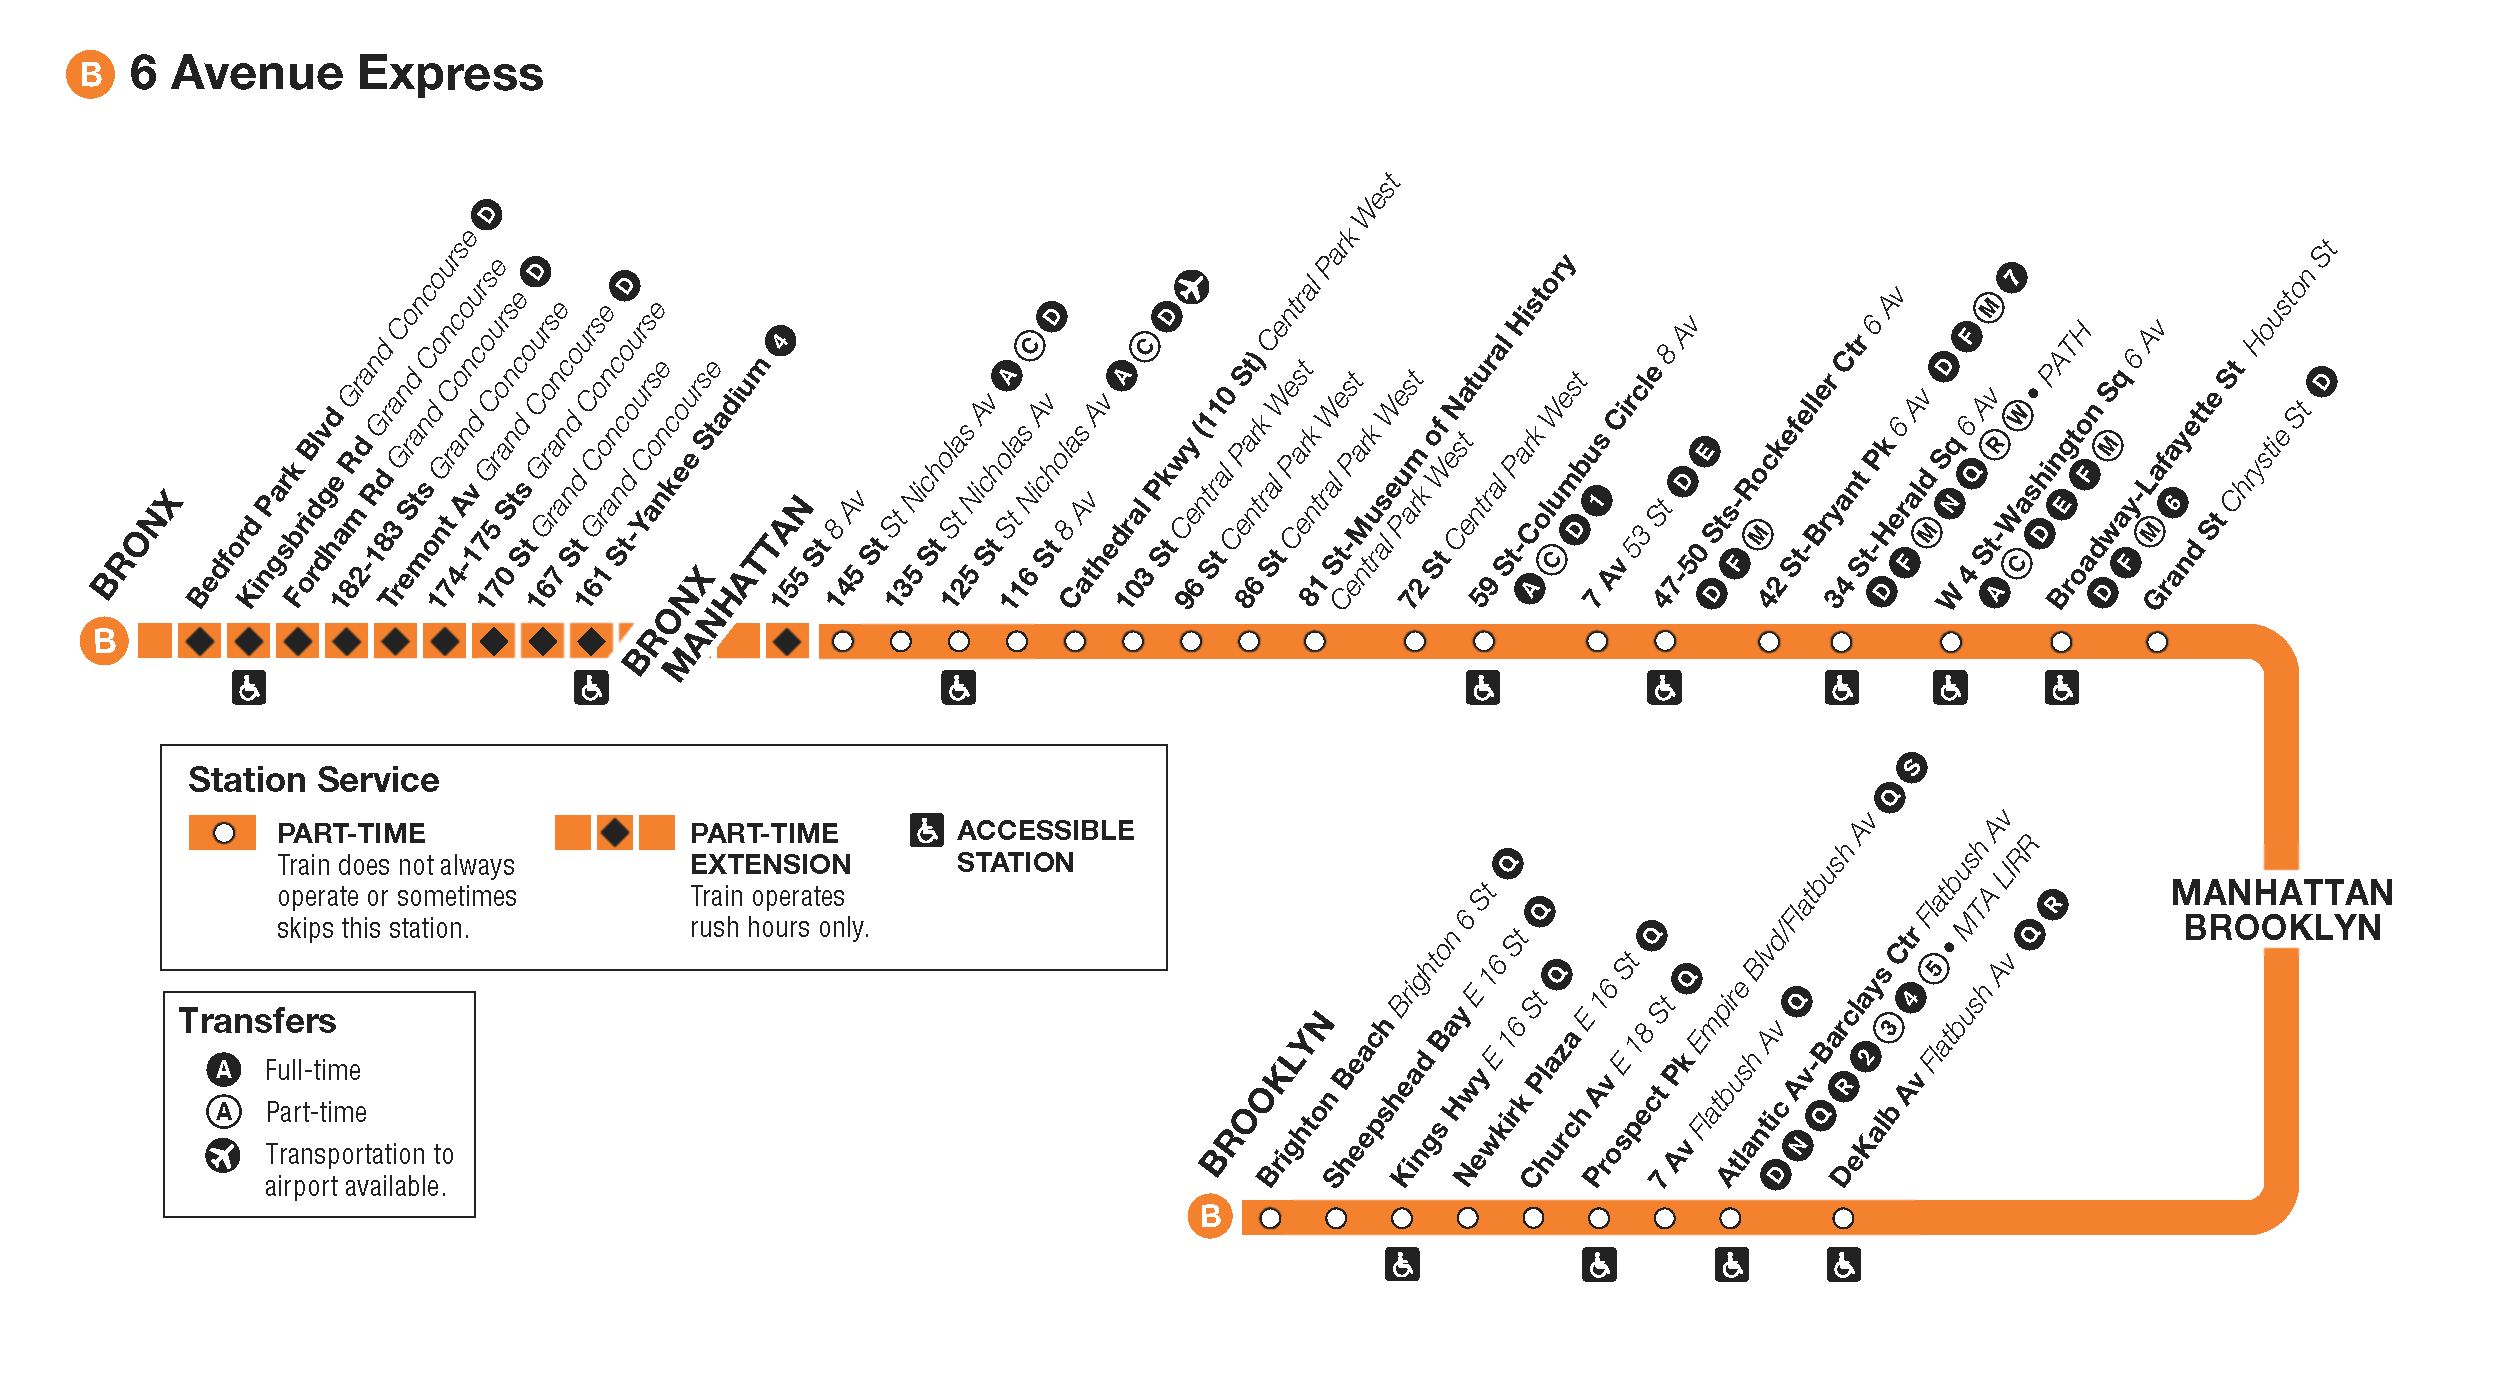 nyc-metro-route-b-6th-avenue-express-map